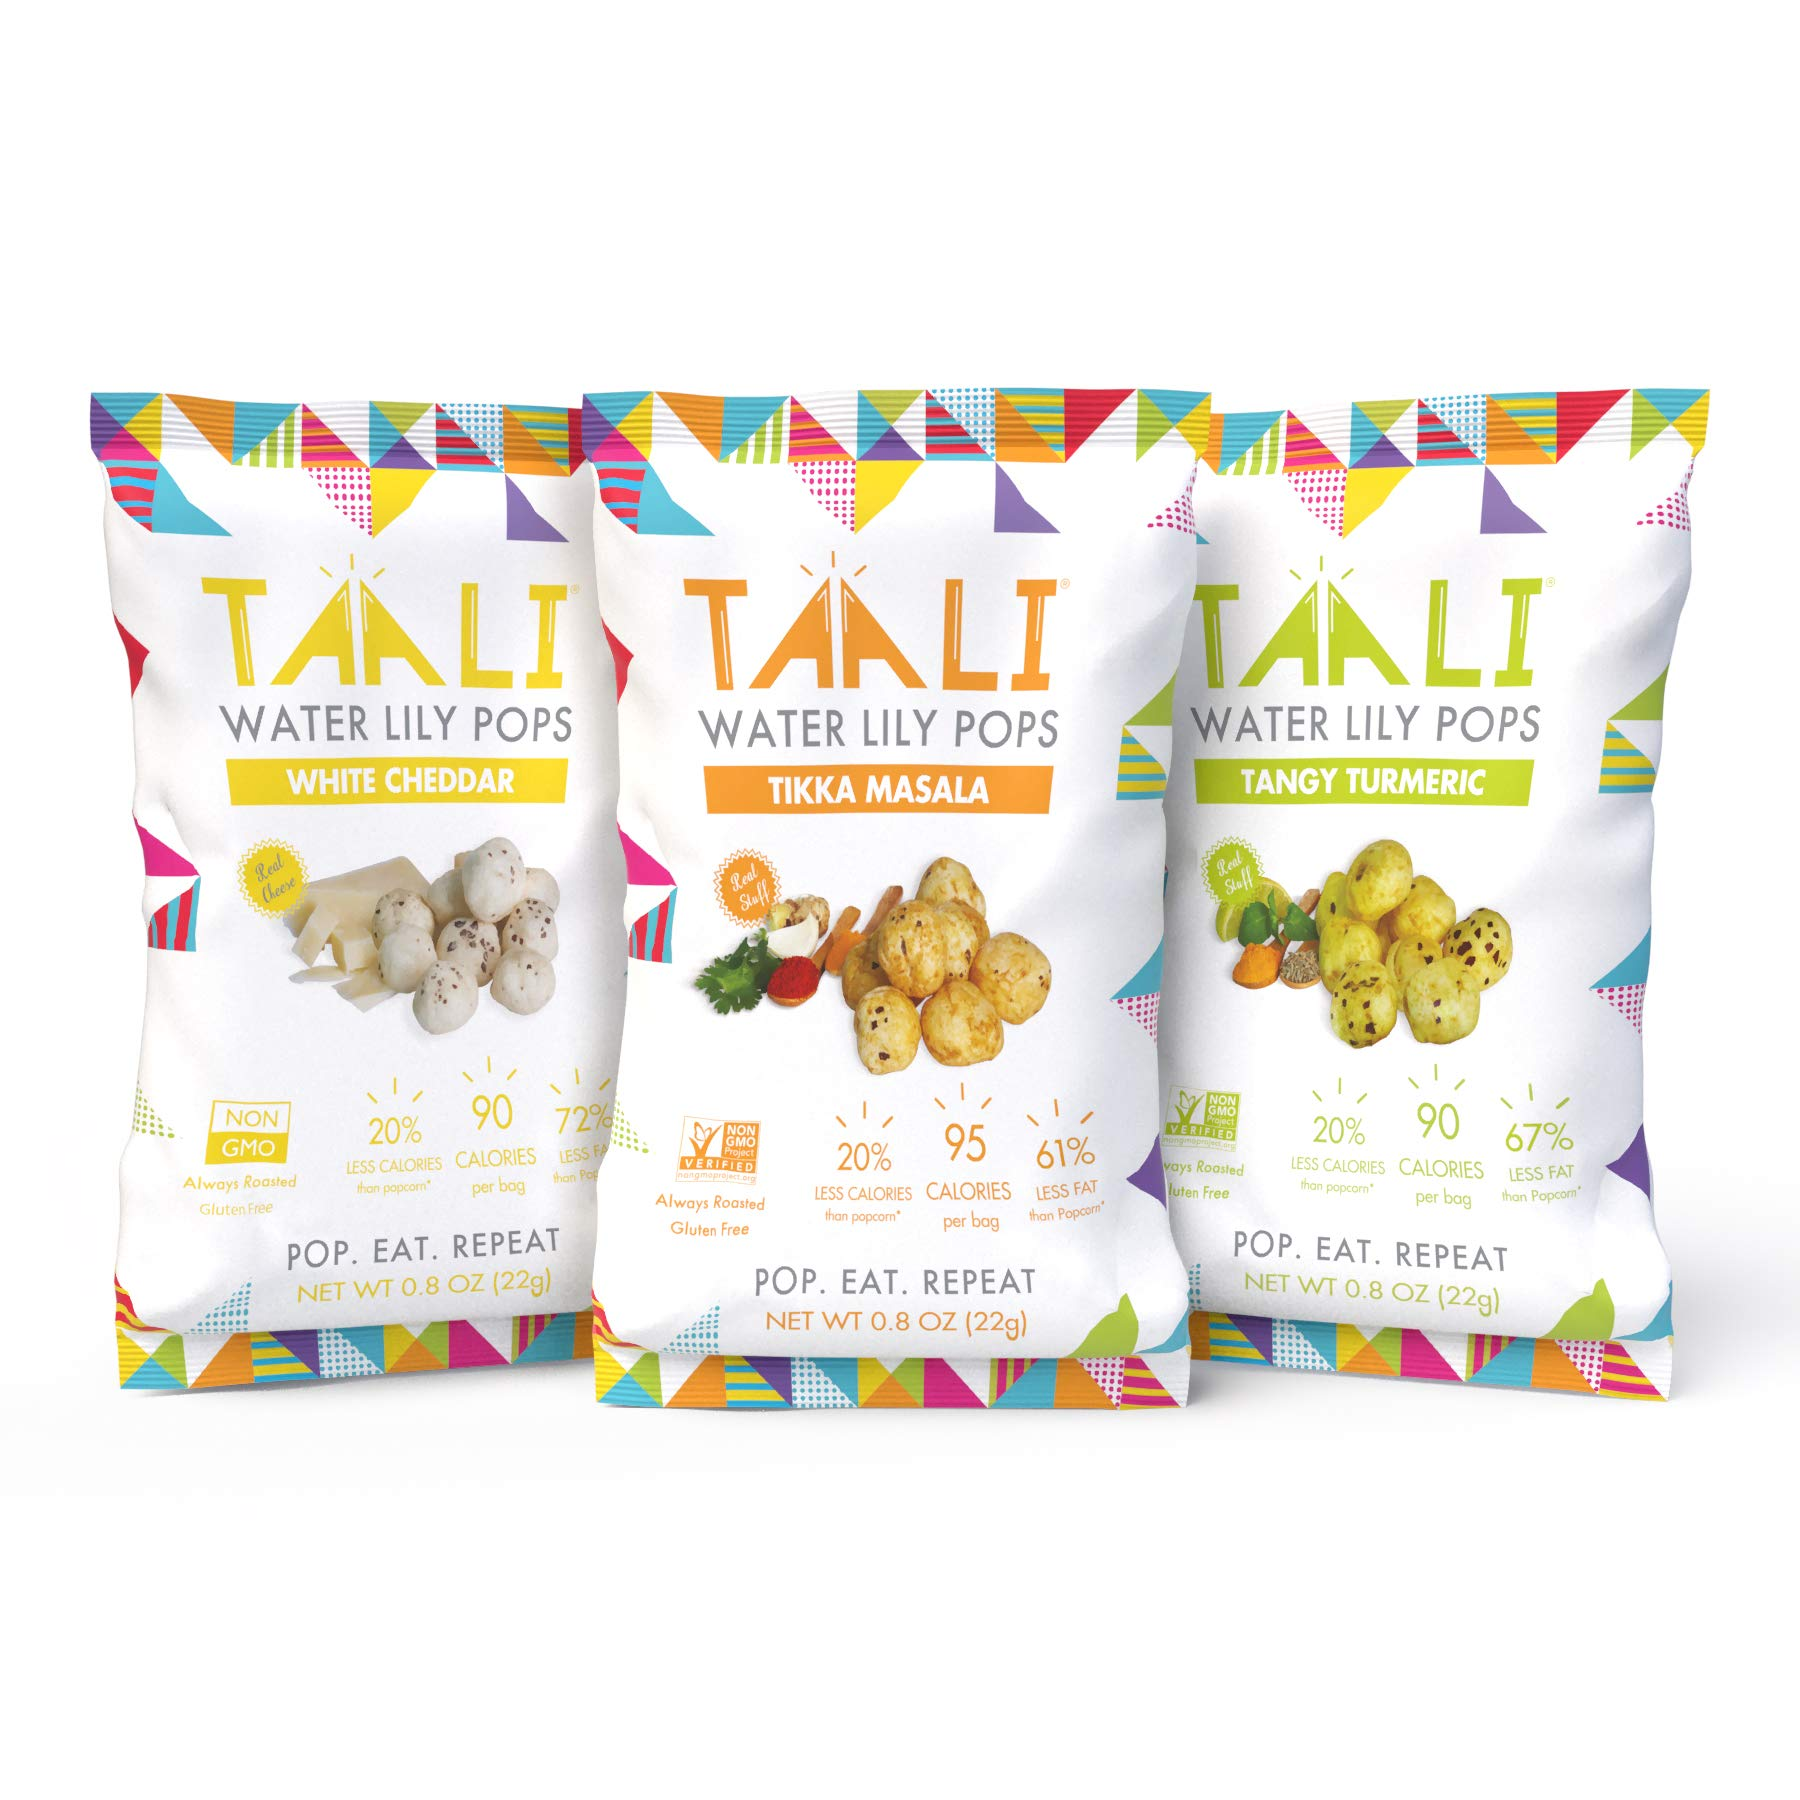 Taali Variety Pack Water Lily Pops (10-Pack) - Three Delicious Flavors | Protein-Rich Roasted Snack | Non GMO Verified - Individual 0.8 oz Bags by Taali (Image #2)